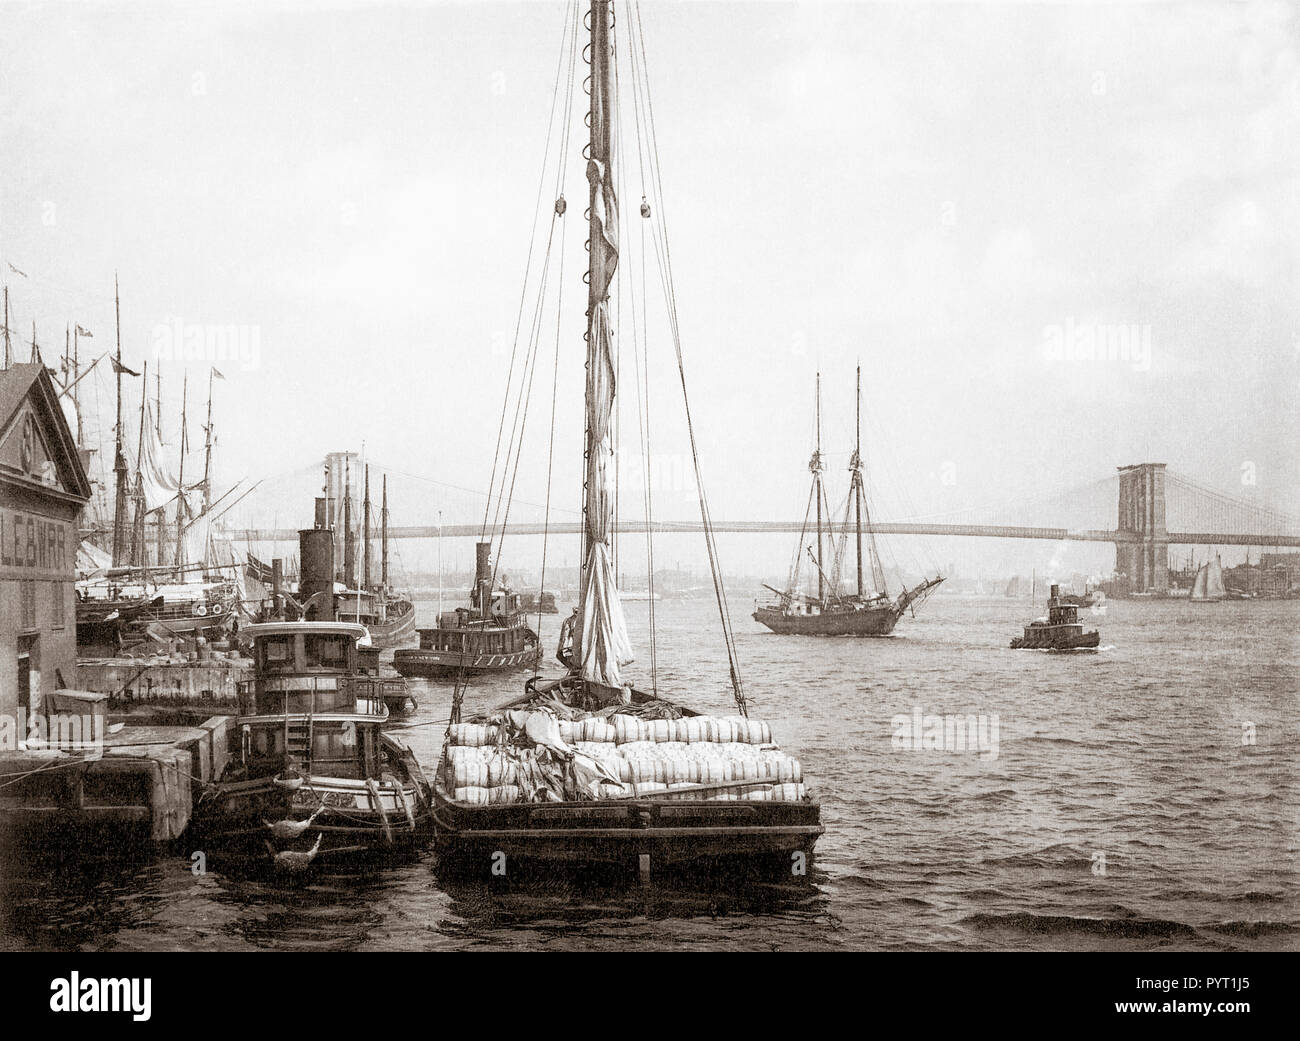 The East River Bridge, New York, United States of America.  After an anonymous photograph taken circa 1880's. - Stock Image